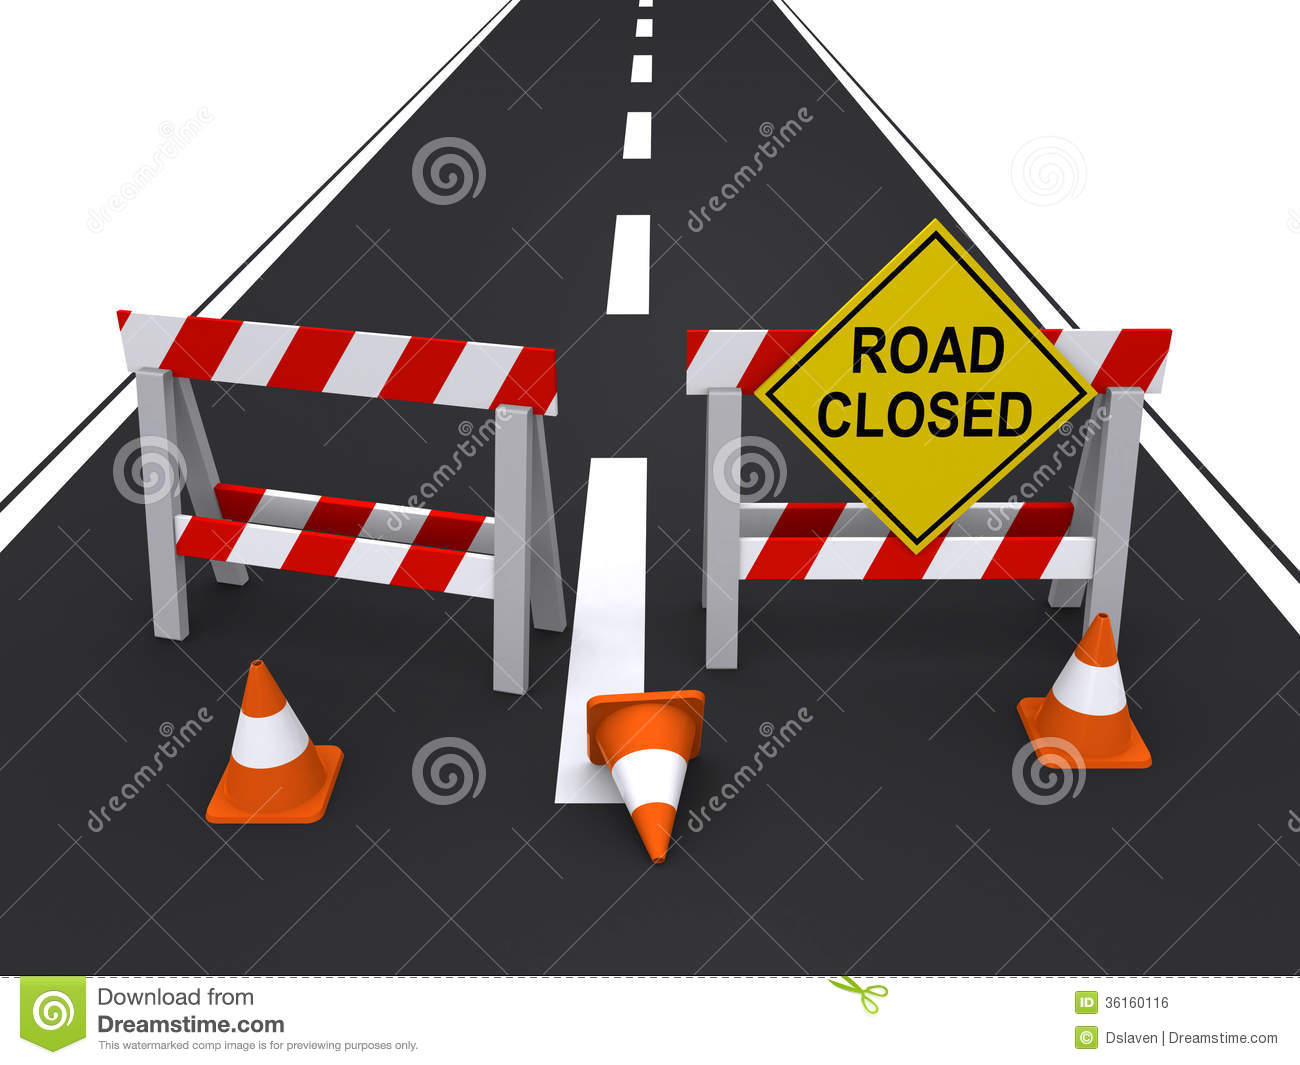 Road Closed Royalty Free Stock Image.